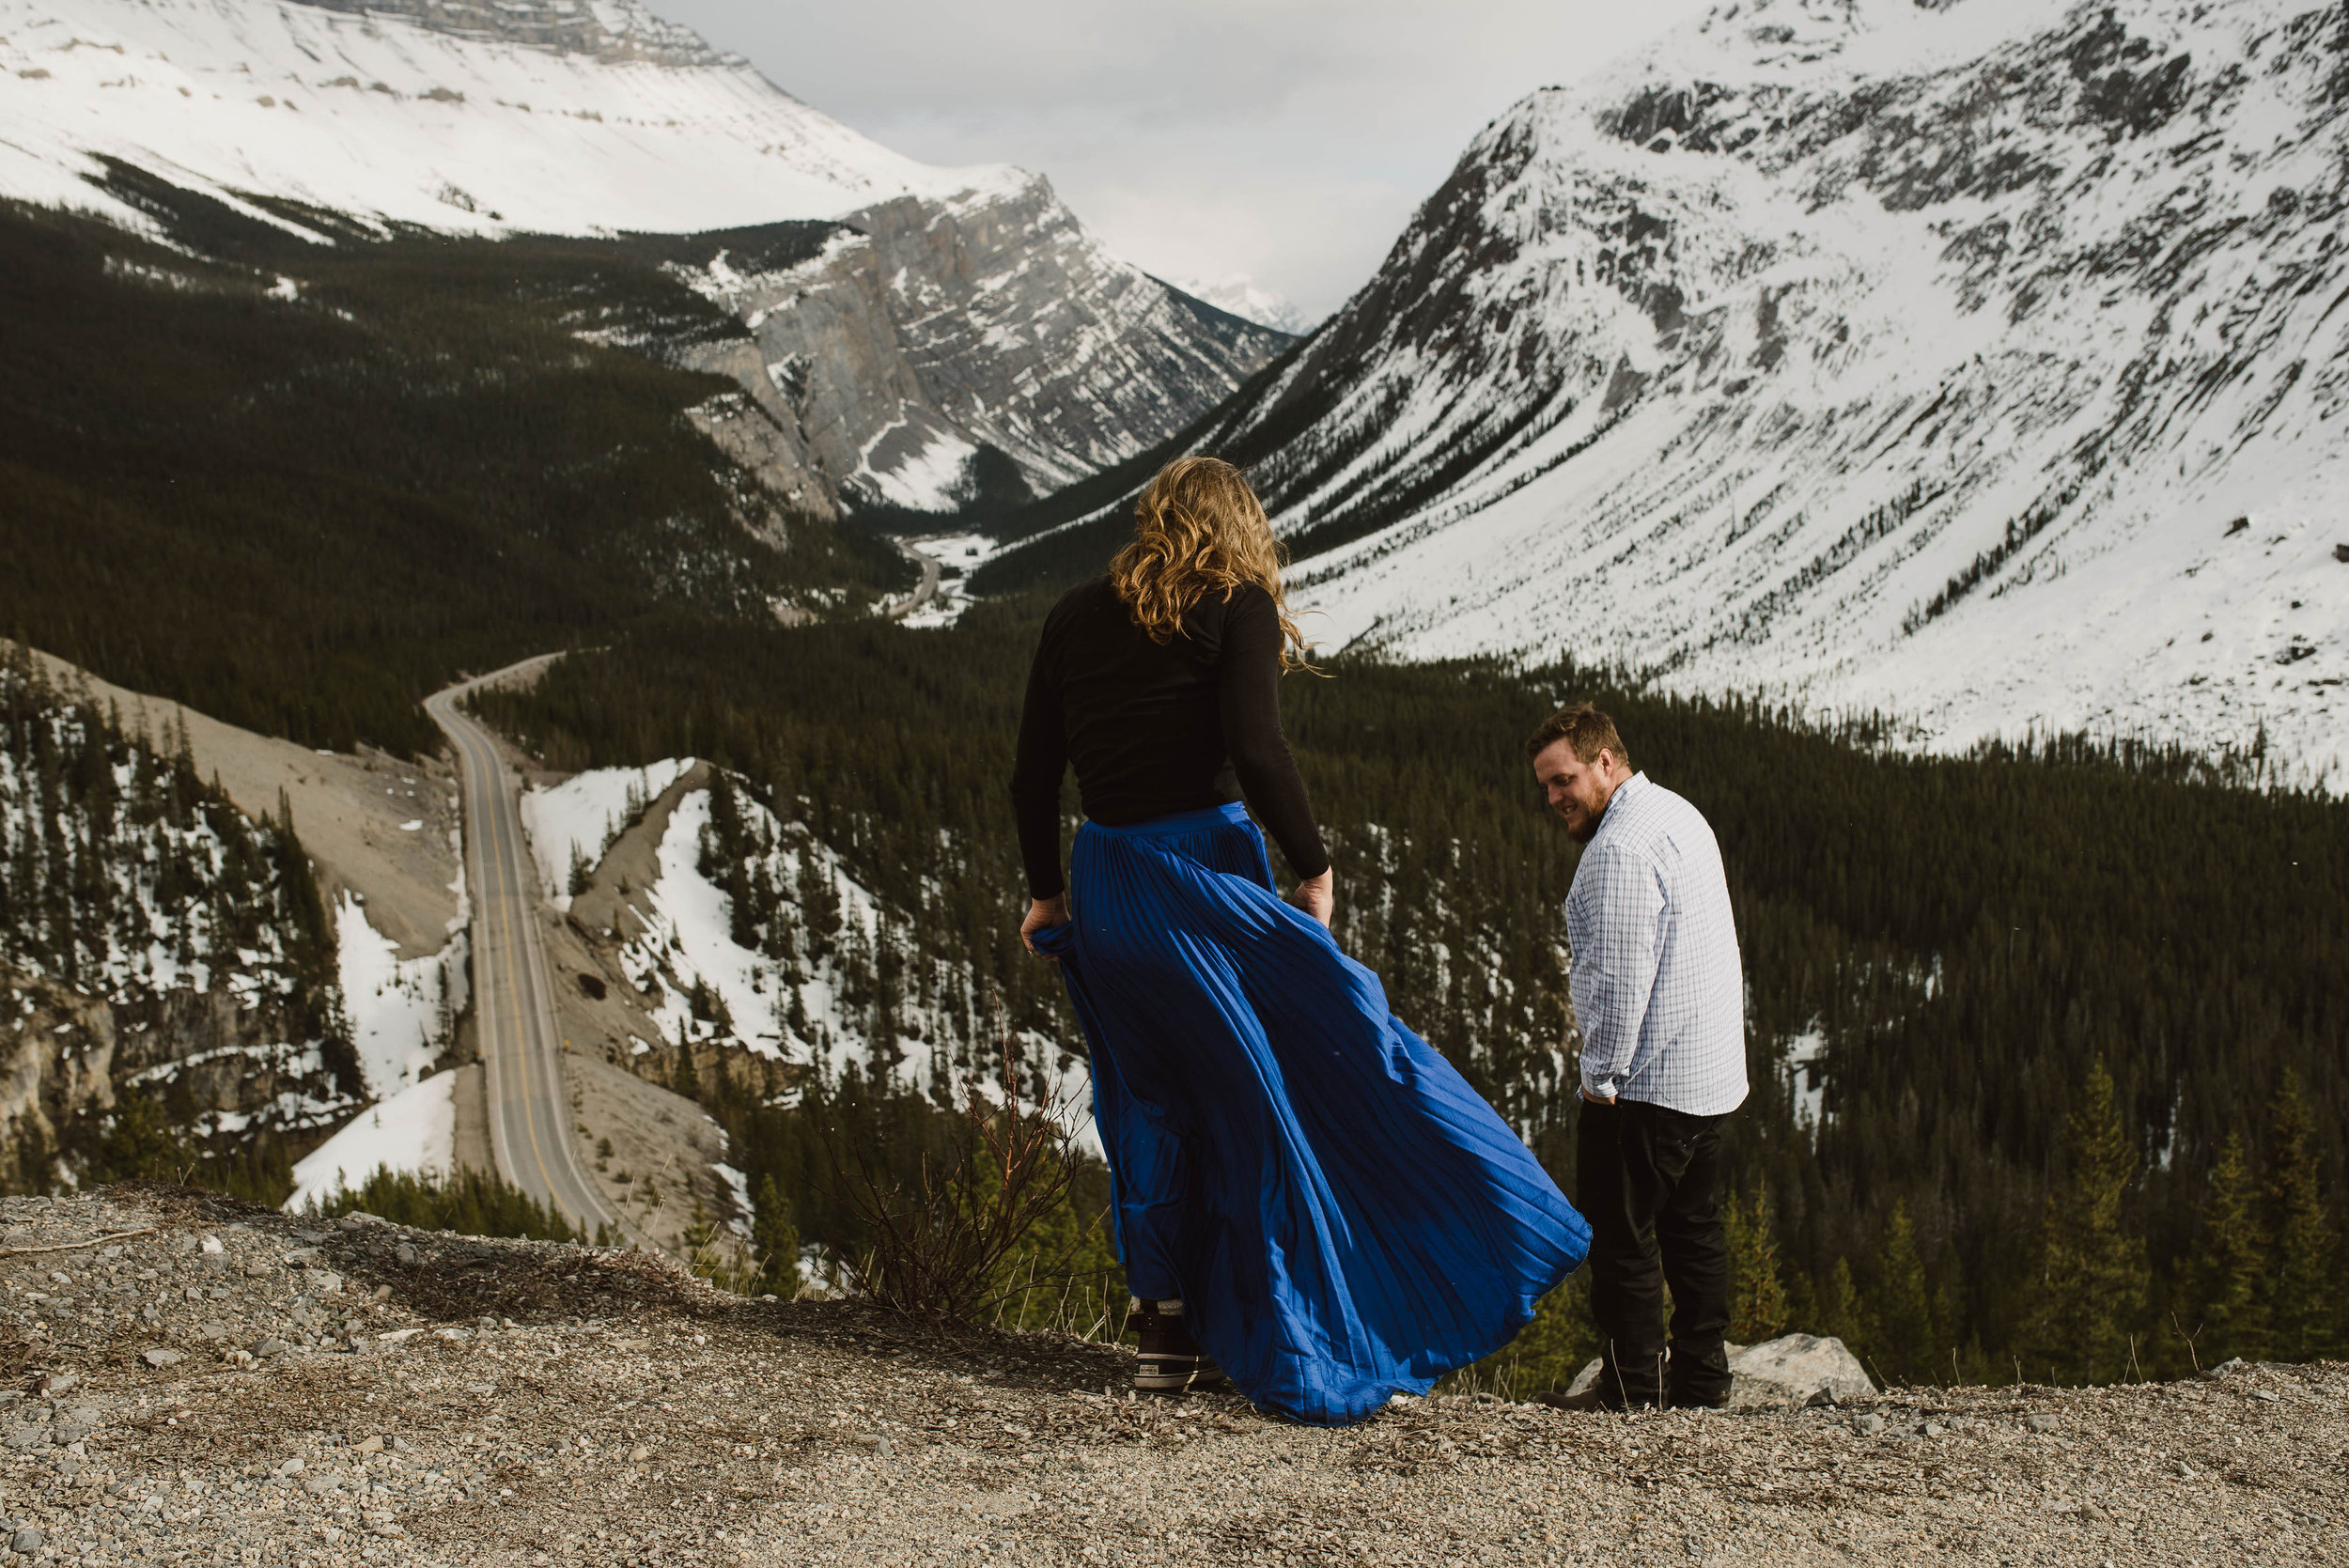 Isaiah-&-Taylor-Photography---Matt-&-Lindsay-Engagement-189.jpg